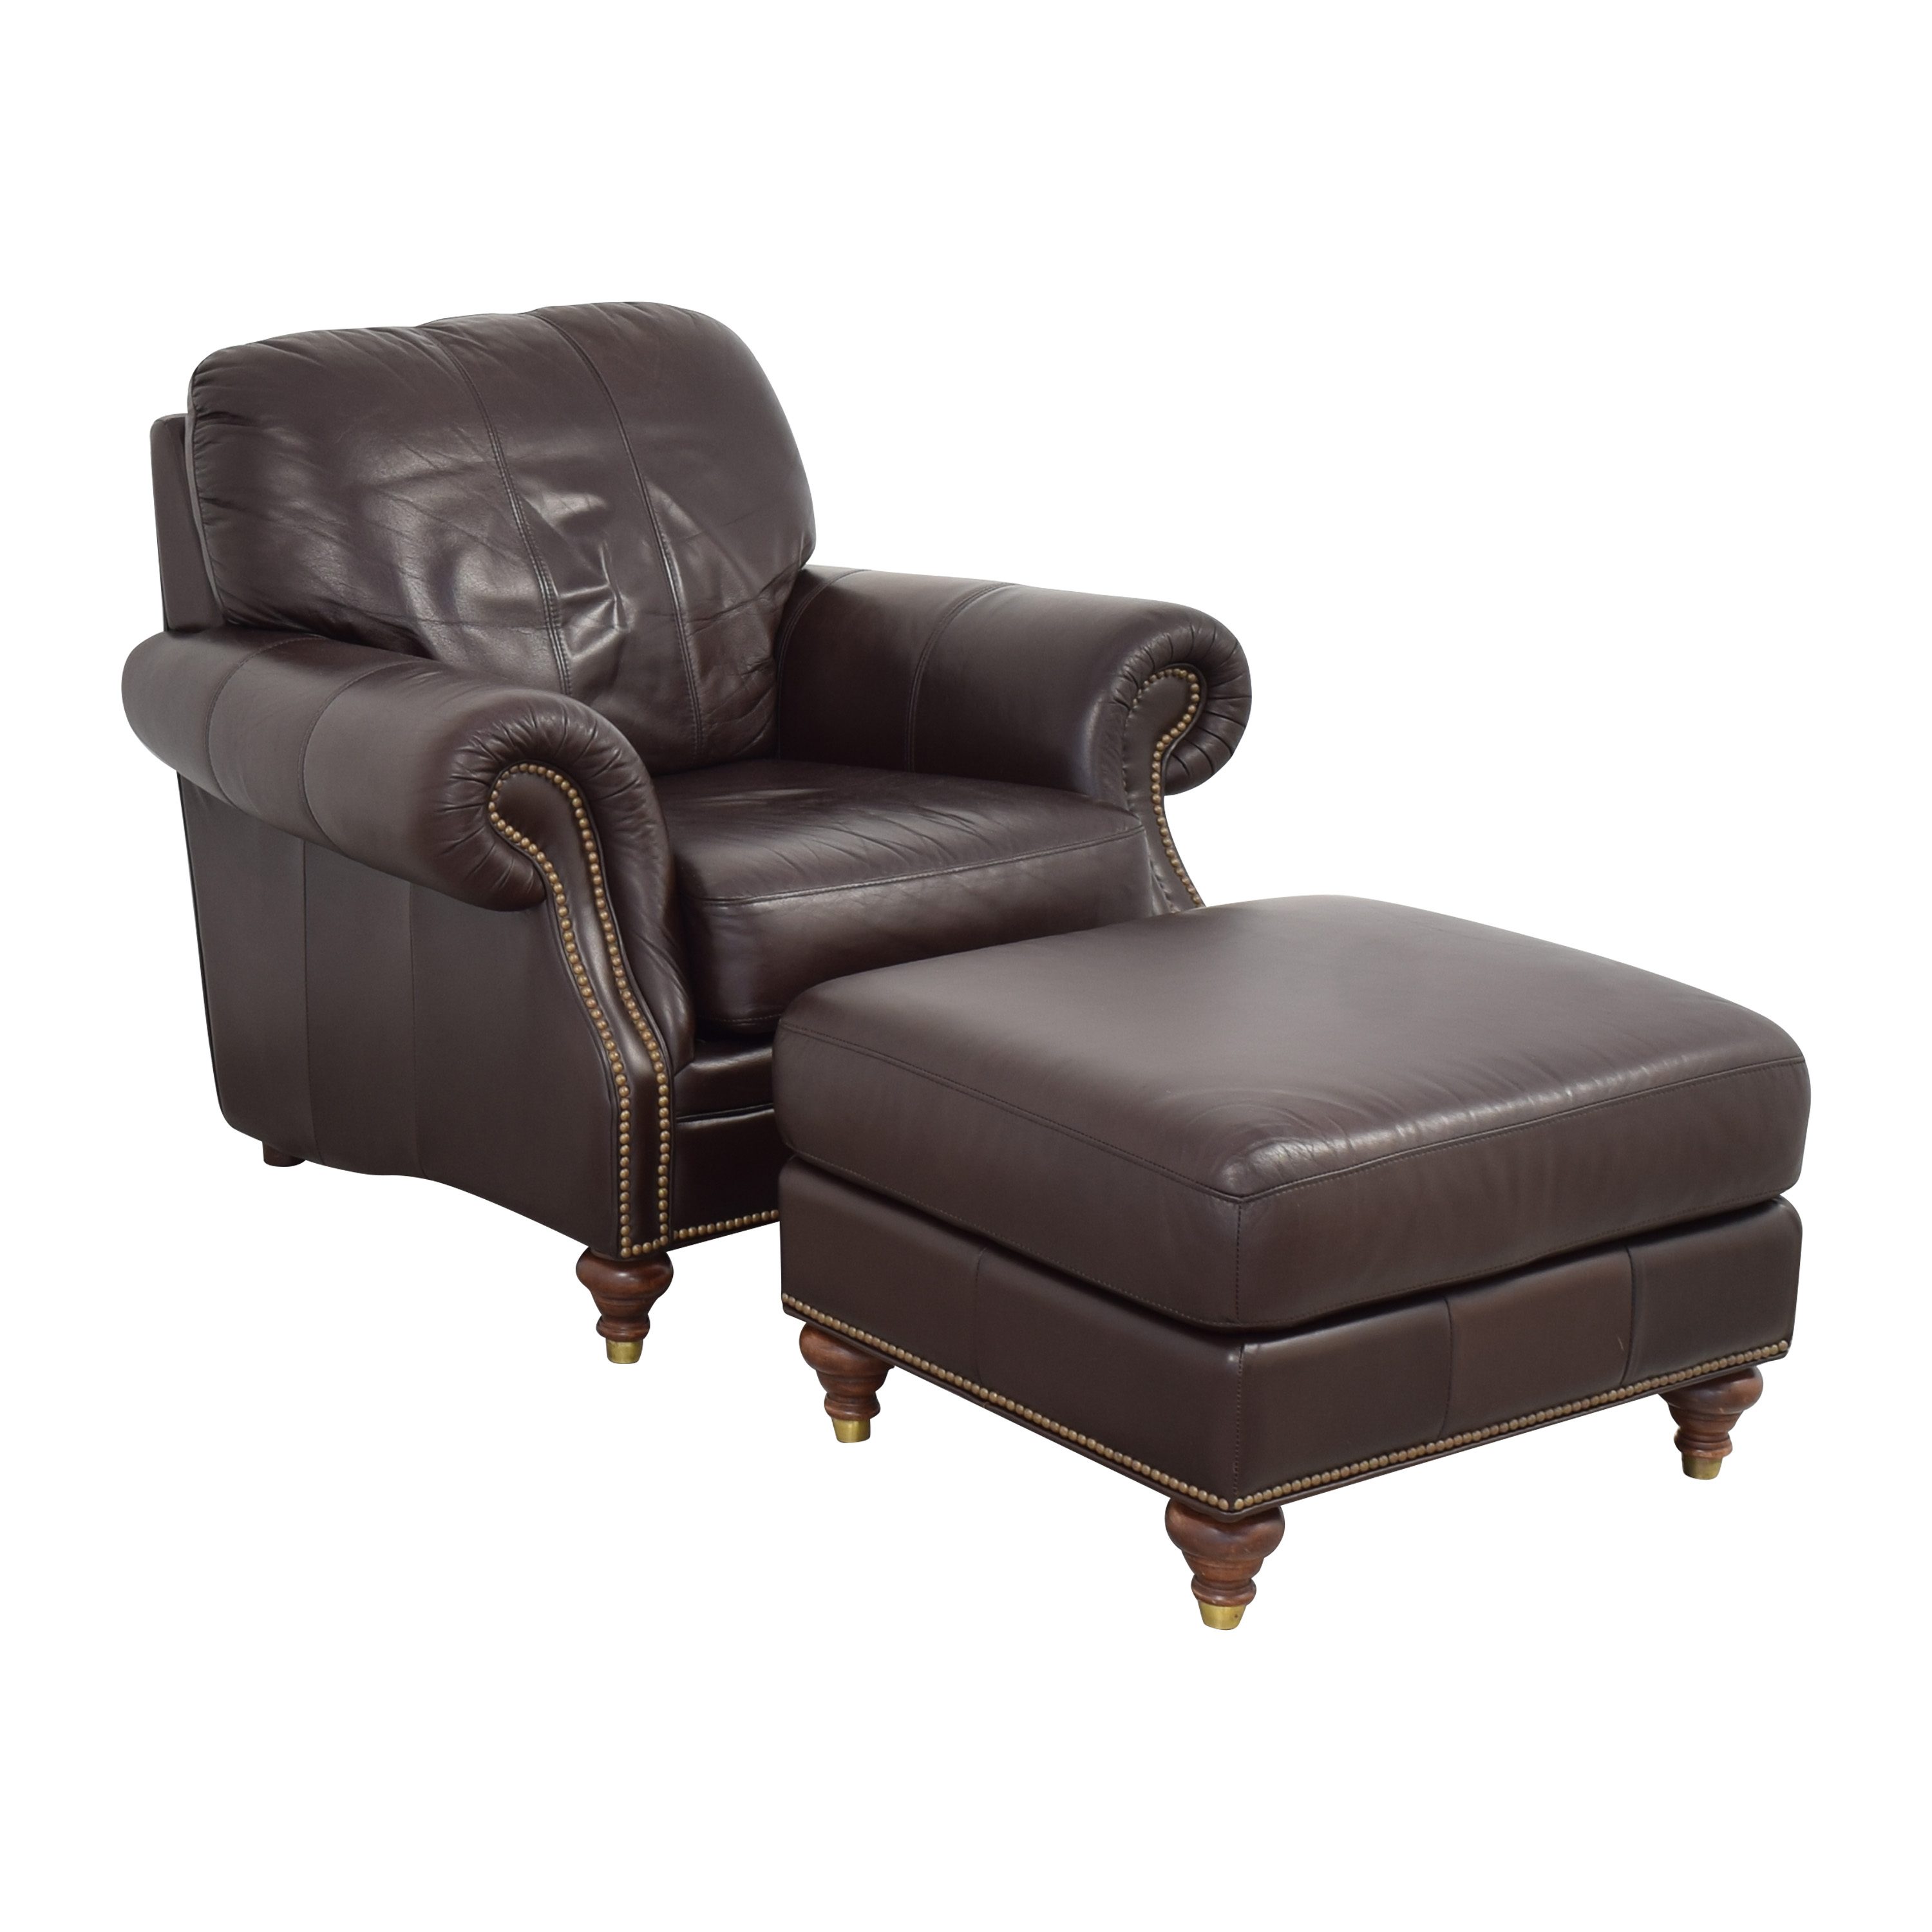 buy Ethan Allen Bennett Roll-Arm Leather Chair with ottoman Ethan Allen Accent Chairs